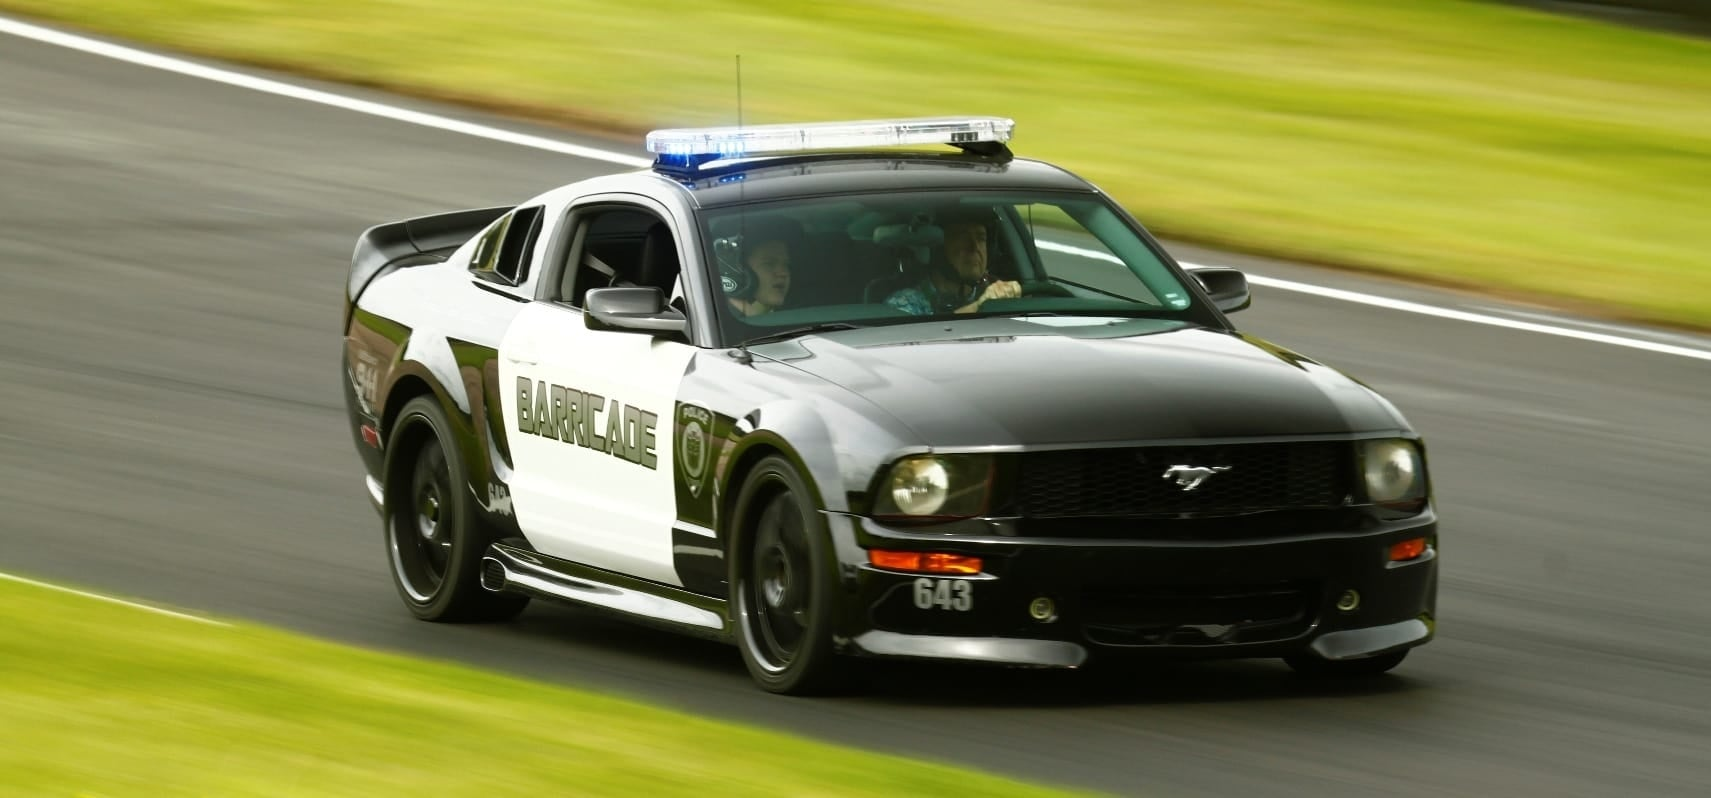 'Barricade' Mustang GT Experience-3